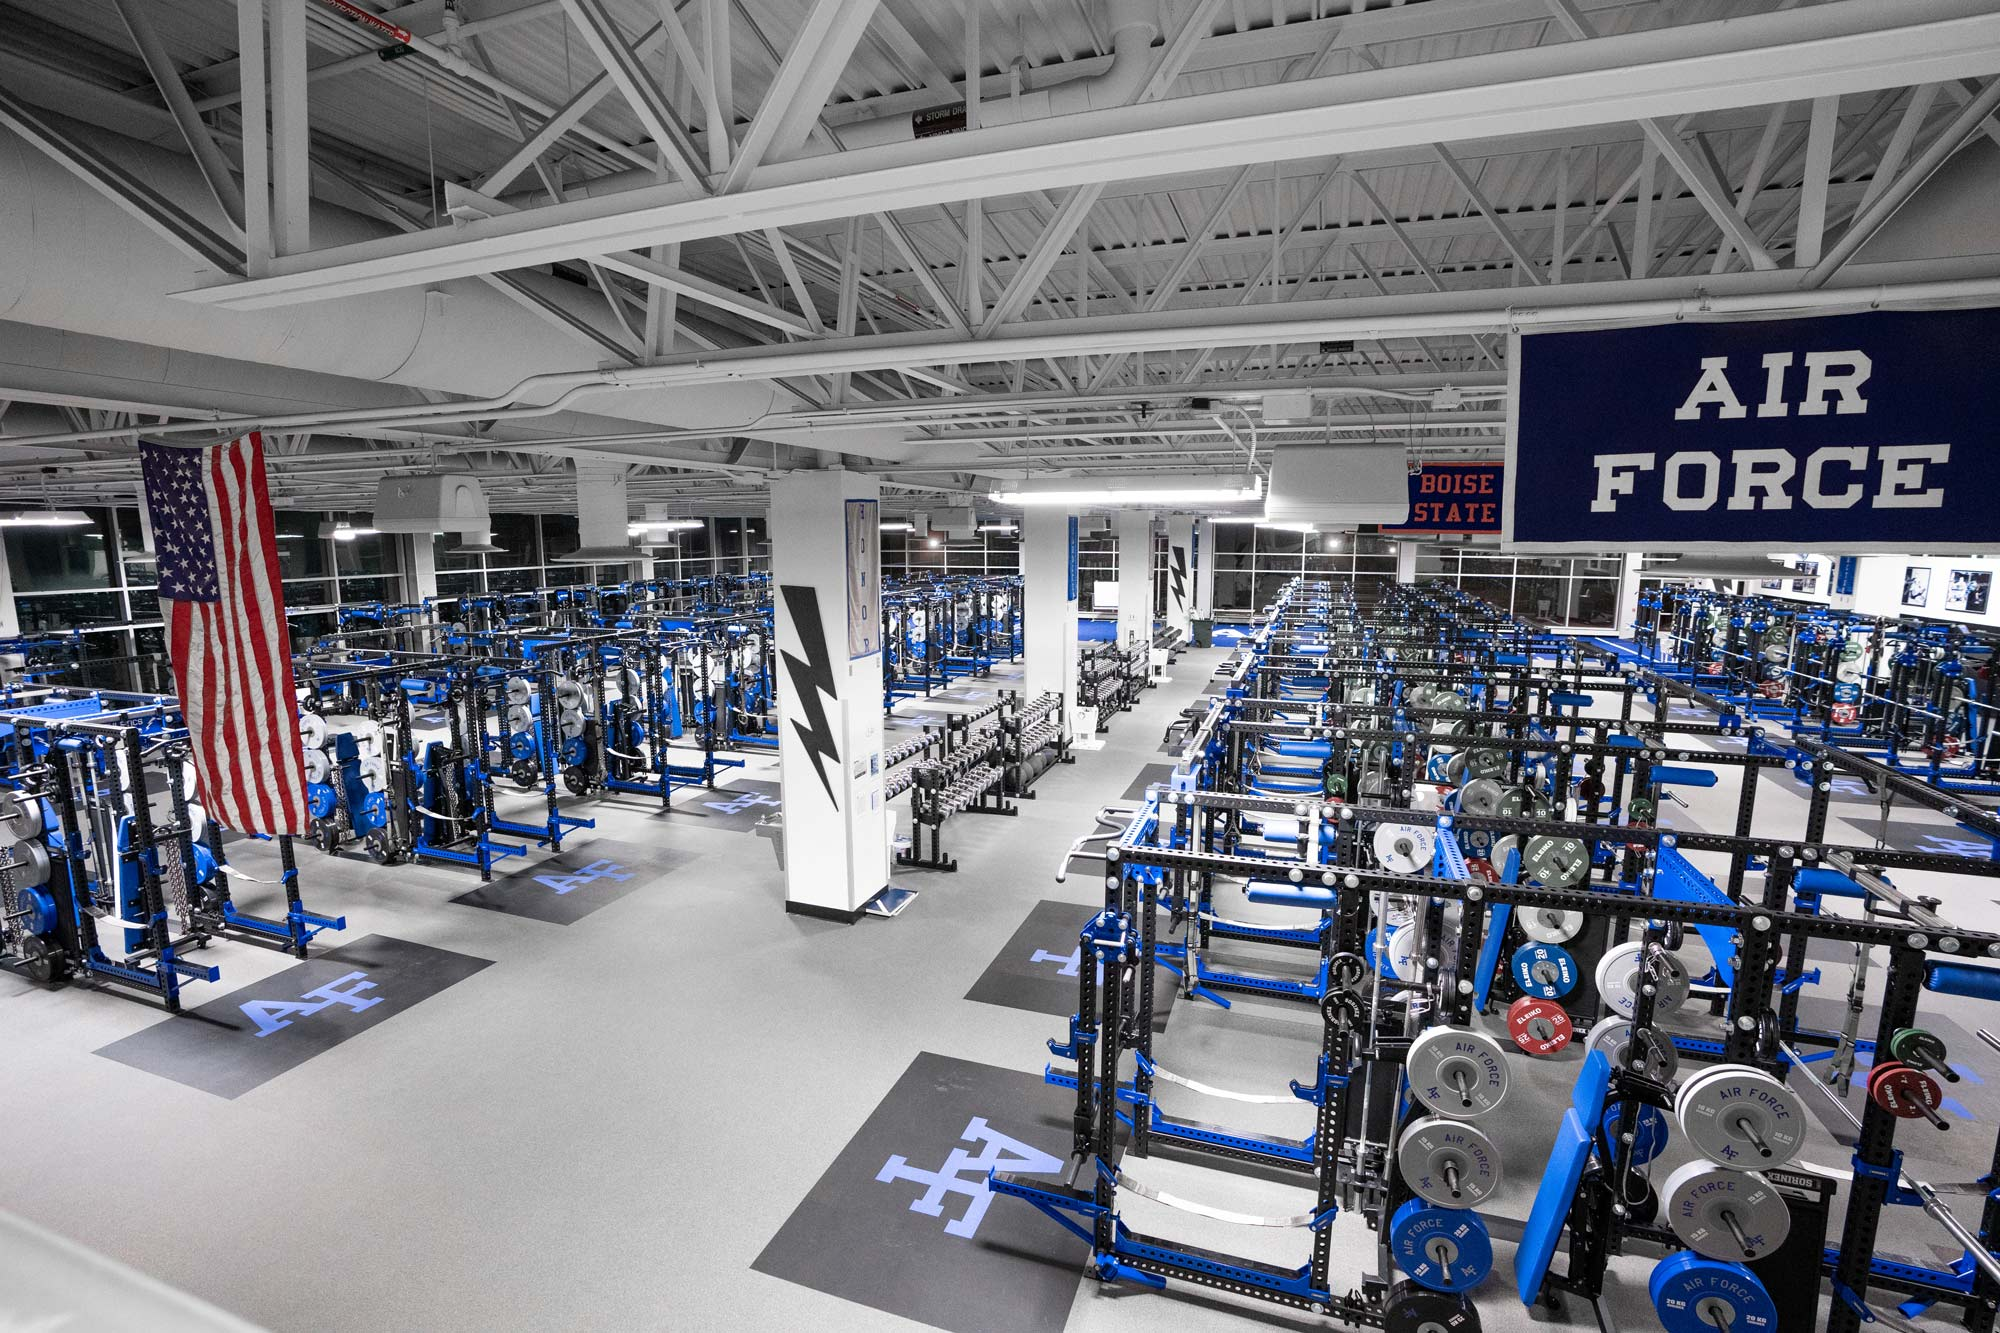 Air Force Academy Sorinex weight room